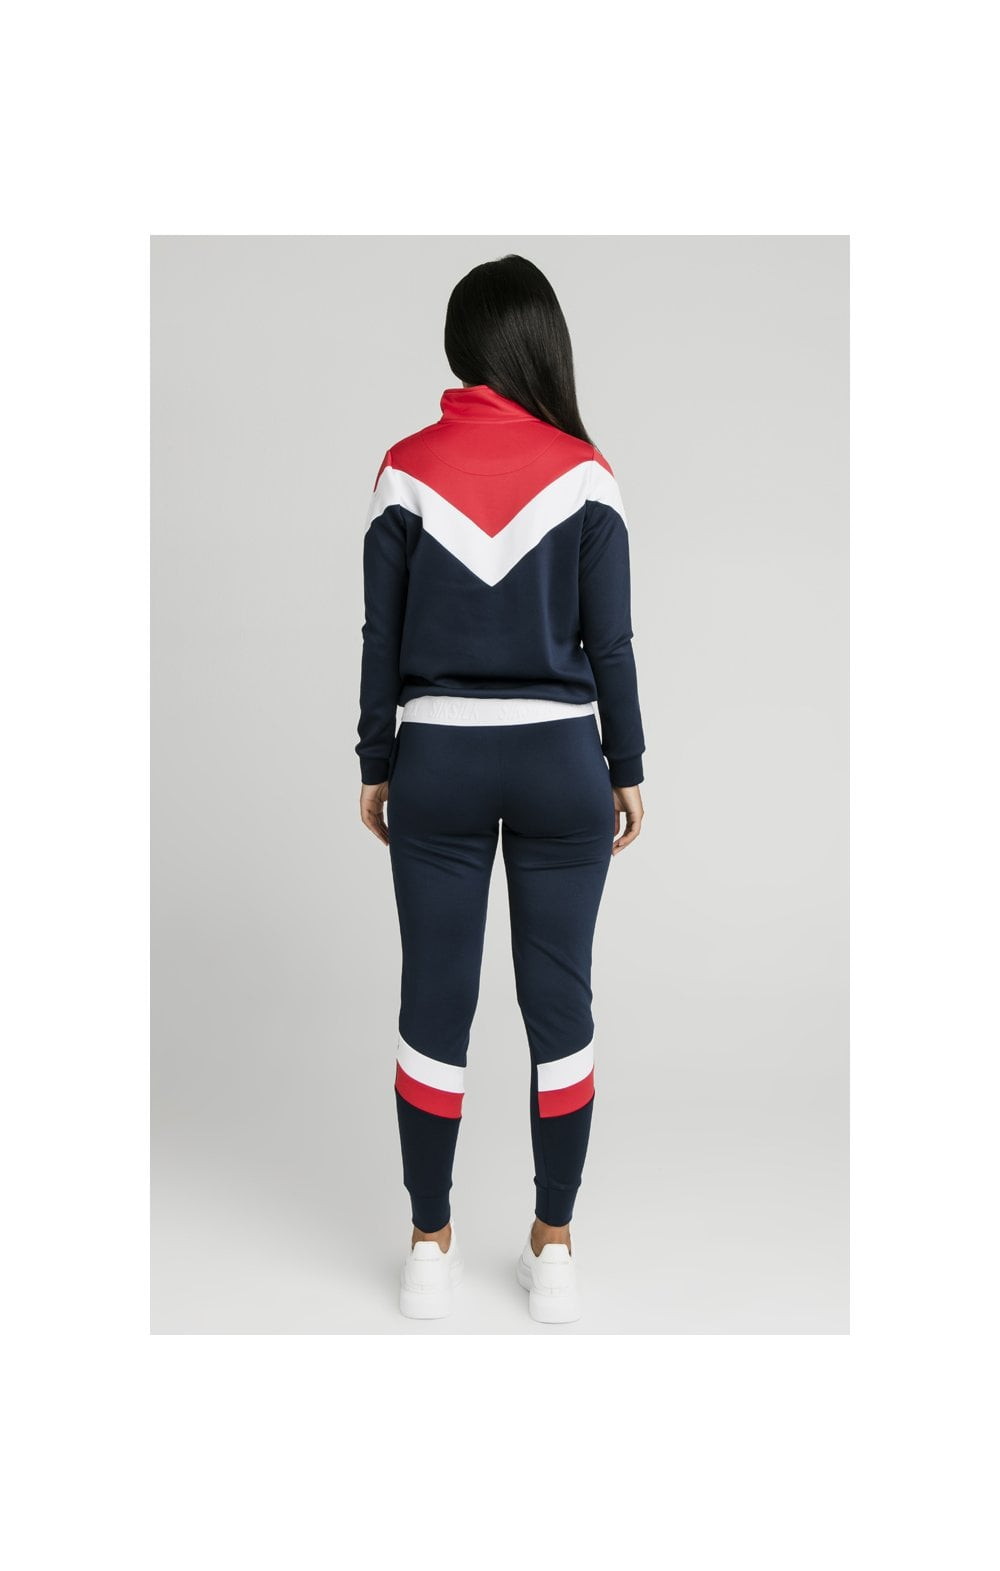 SikSilk Retro Sport Track Top - Navy, Red & White (5)